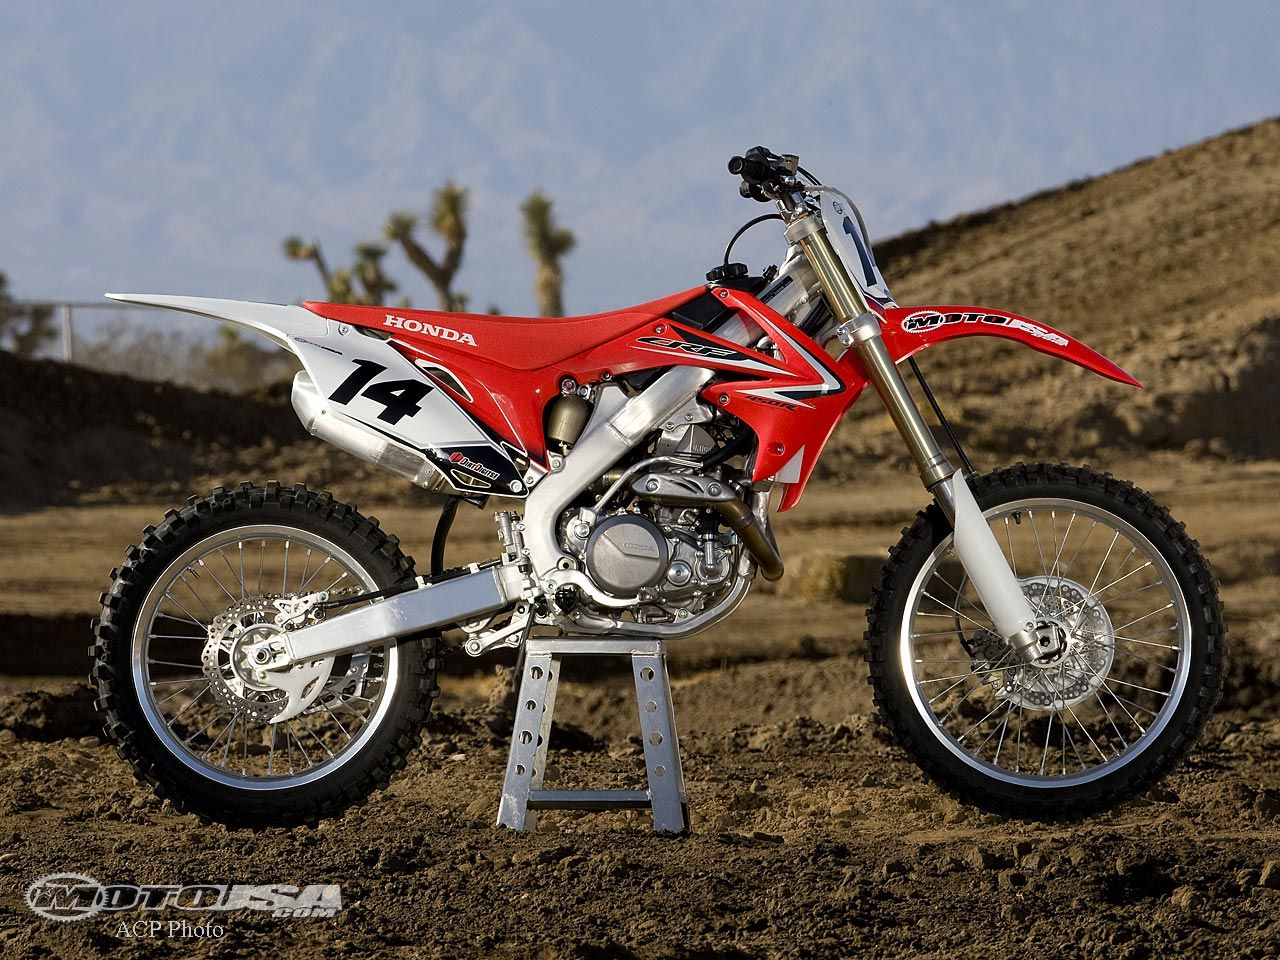 Honda Crf 450 R Toys Pinterest Honda Dirt Biking And Motocross